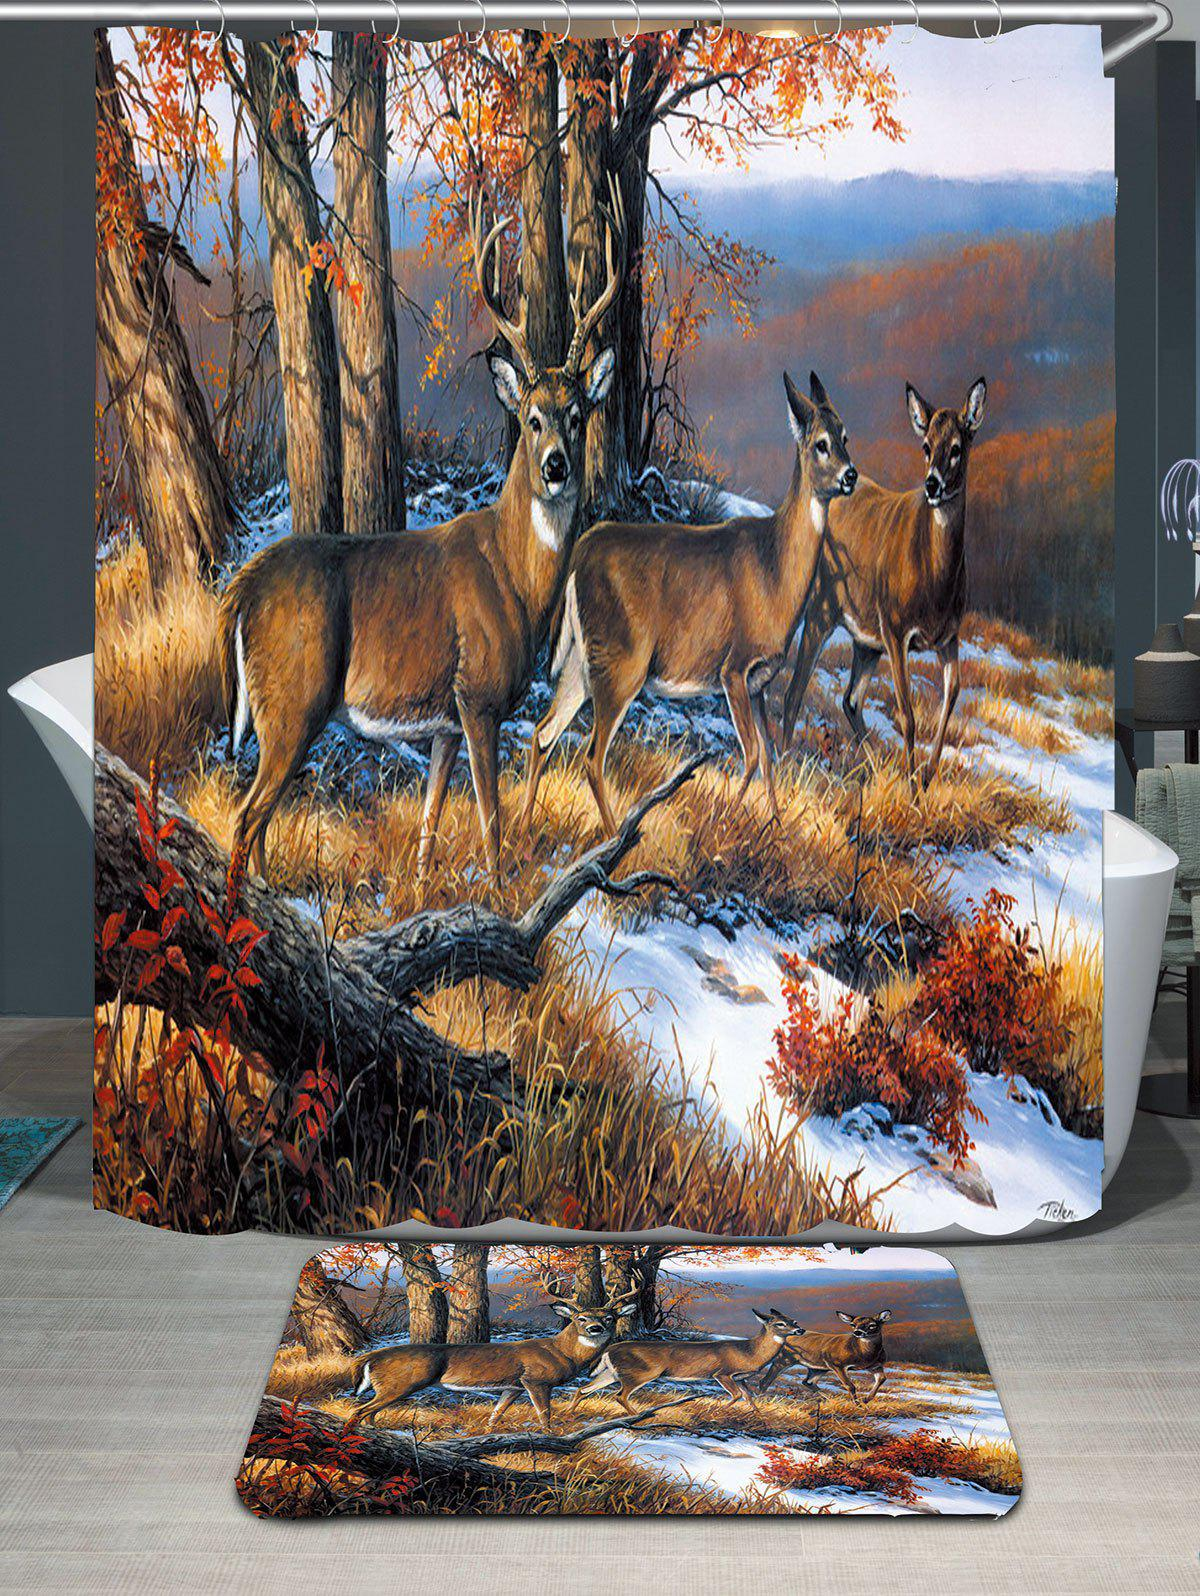 Waterproof Snowfield Deer Printed Shower Curtain and RugHOME<br><br>Size: W59 INCH * L71 INCH; Color: BROWN; Products Type: Shower Curtains; Materials: Polyester; Pattern: Animal; Style: Trendy; Size: Rug Size: W40*L60cm ( W16 inch * L24 inch ); Number of Hook Holes: W59 inch*L71 inch: 10; W71 inch*L71 inch: 12; W79 inch*L71 inch: 12;; Package Contents: 1 x Shower Curtain 1 x Hooks ( Set ) 1 x Rug;